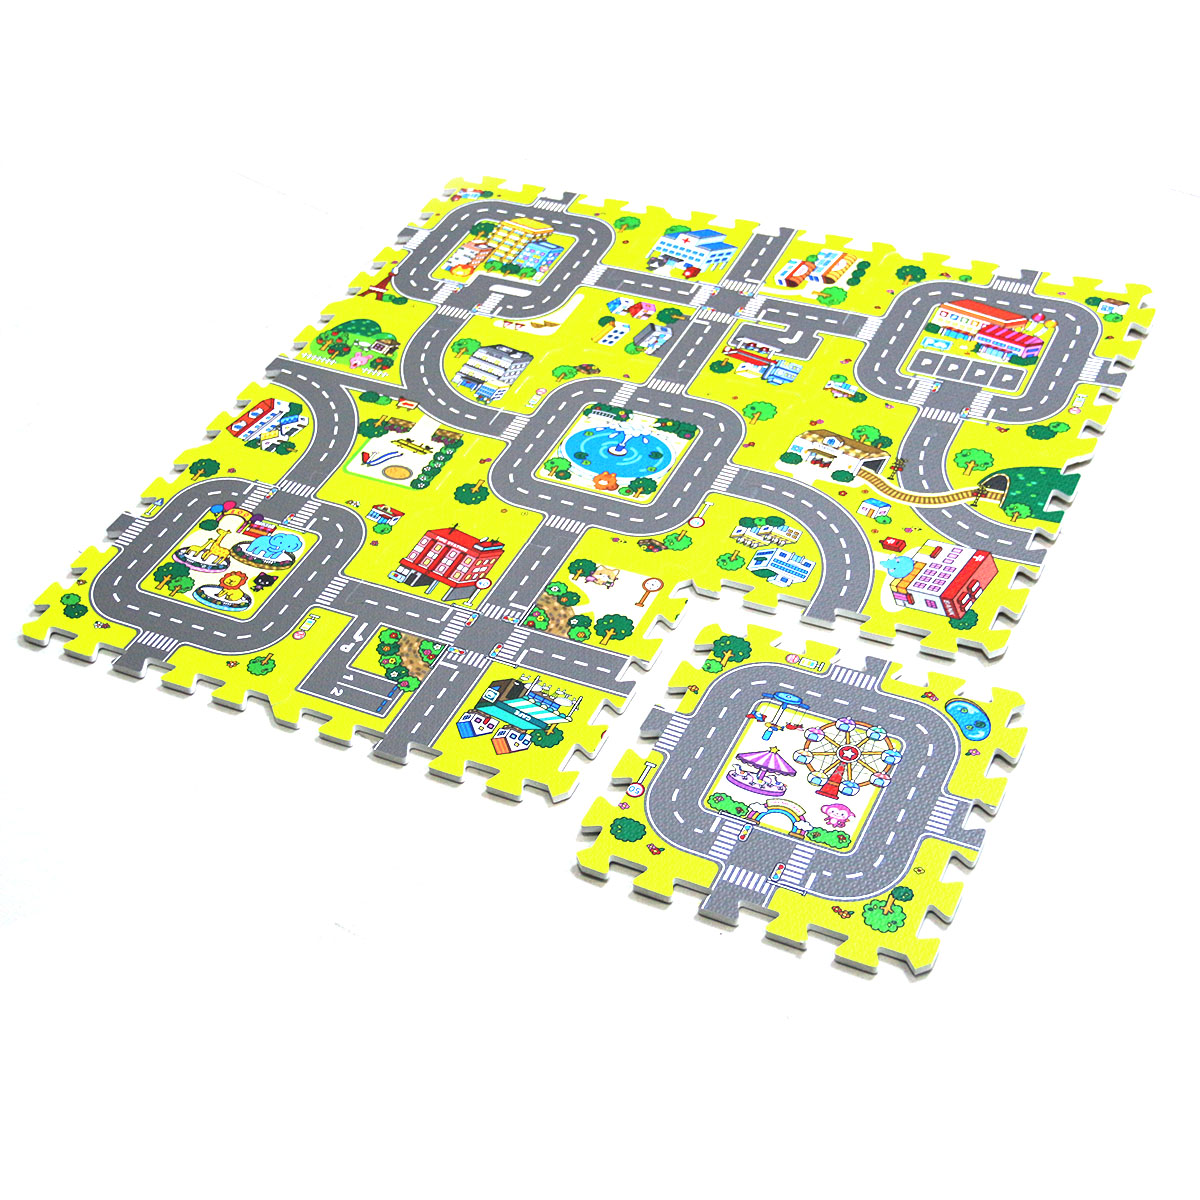 9pcs/lot Eva Activity Mats Foam Baby Play Mat Carpet Puzzle for Children Kids Infant Foldable Play Gym Crawling Rug Playmat baby play mats 2 cm thick kids rug developing mat for children carpet for children rugs baby mats toy for baby gym game eva foam